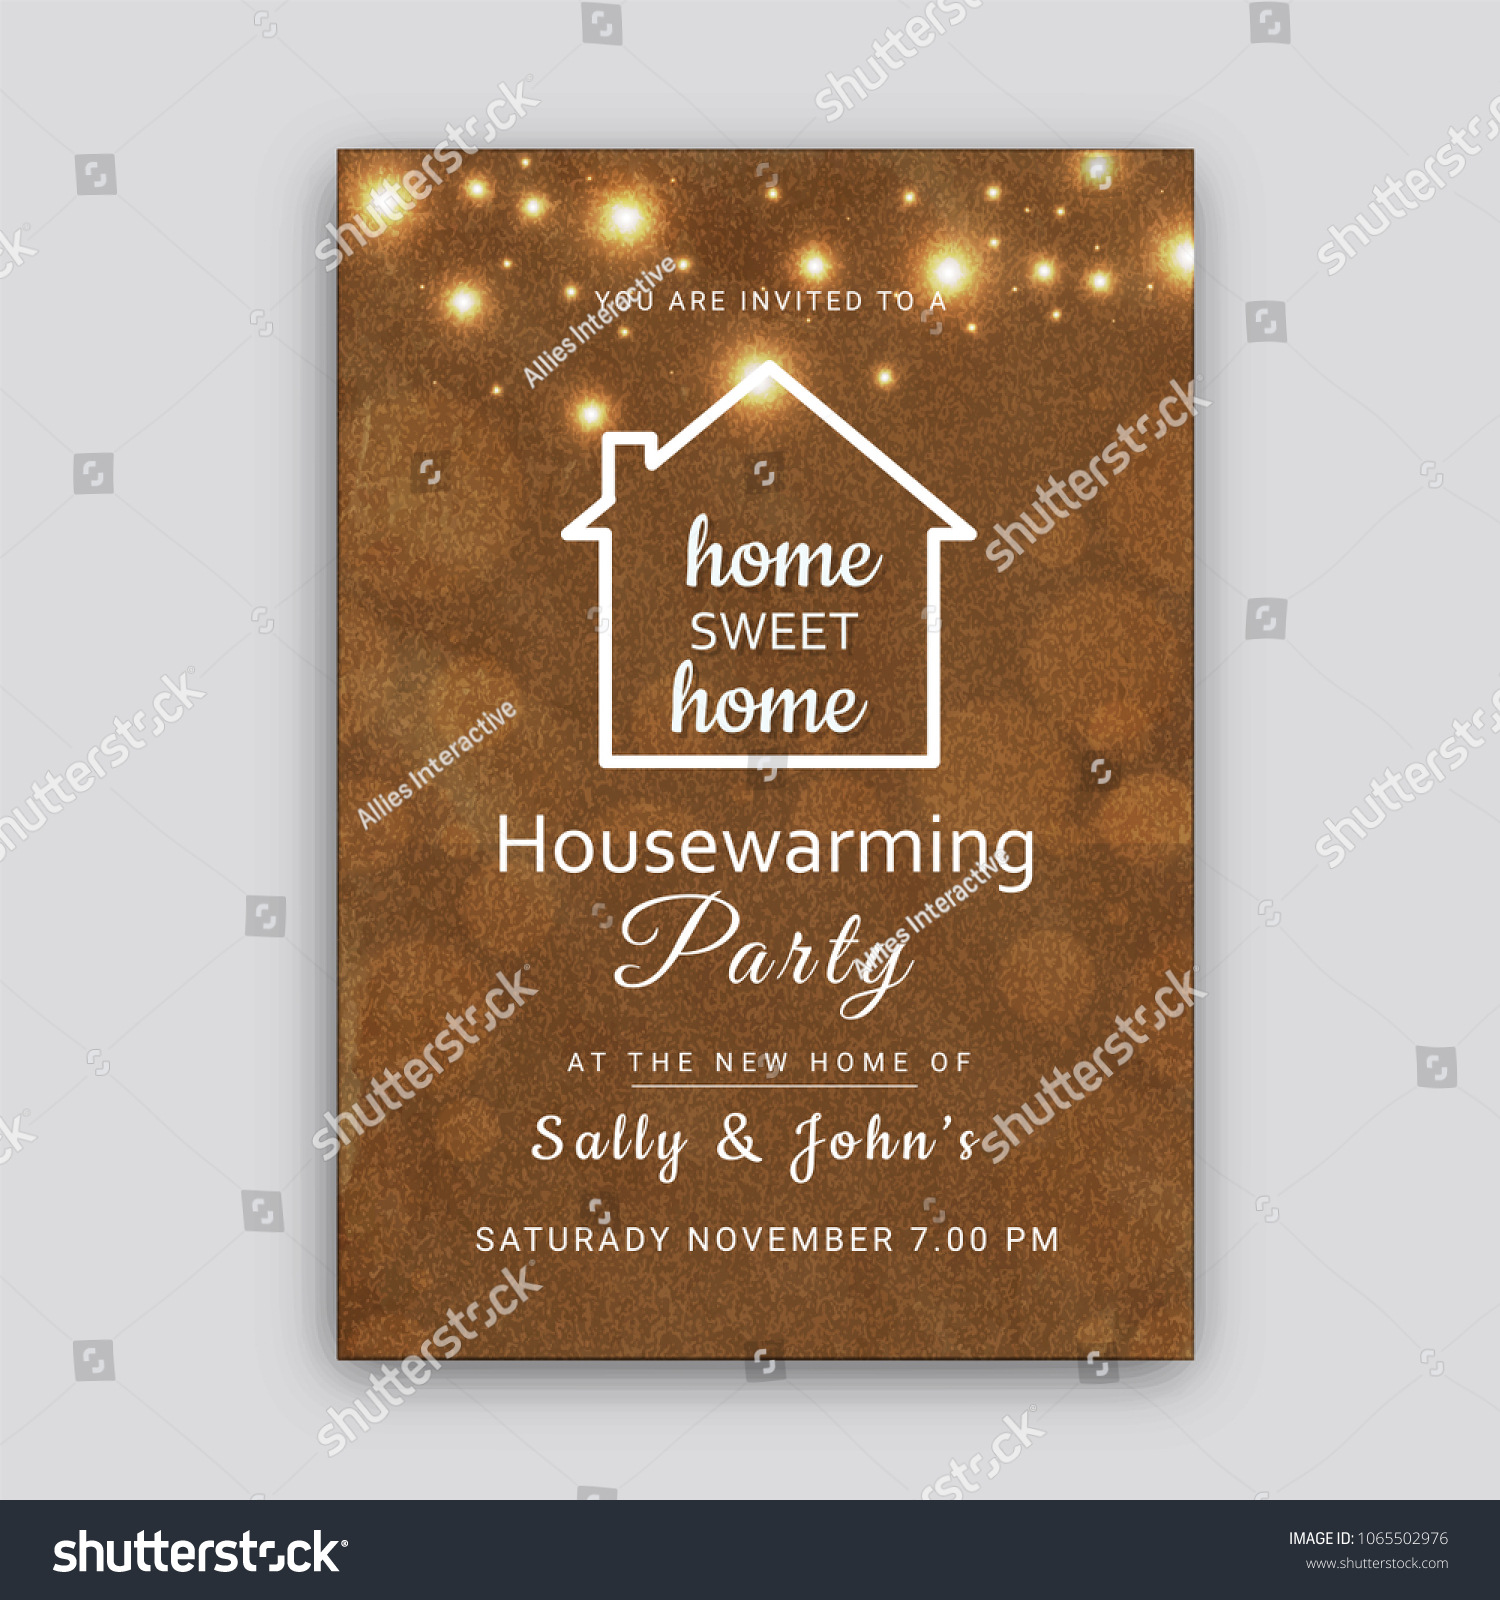 Housewarming Party Invitation Card Design Stock Vector (Royalty Free)  1065502976